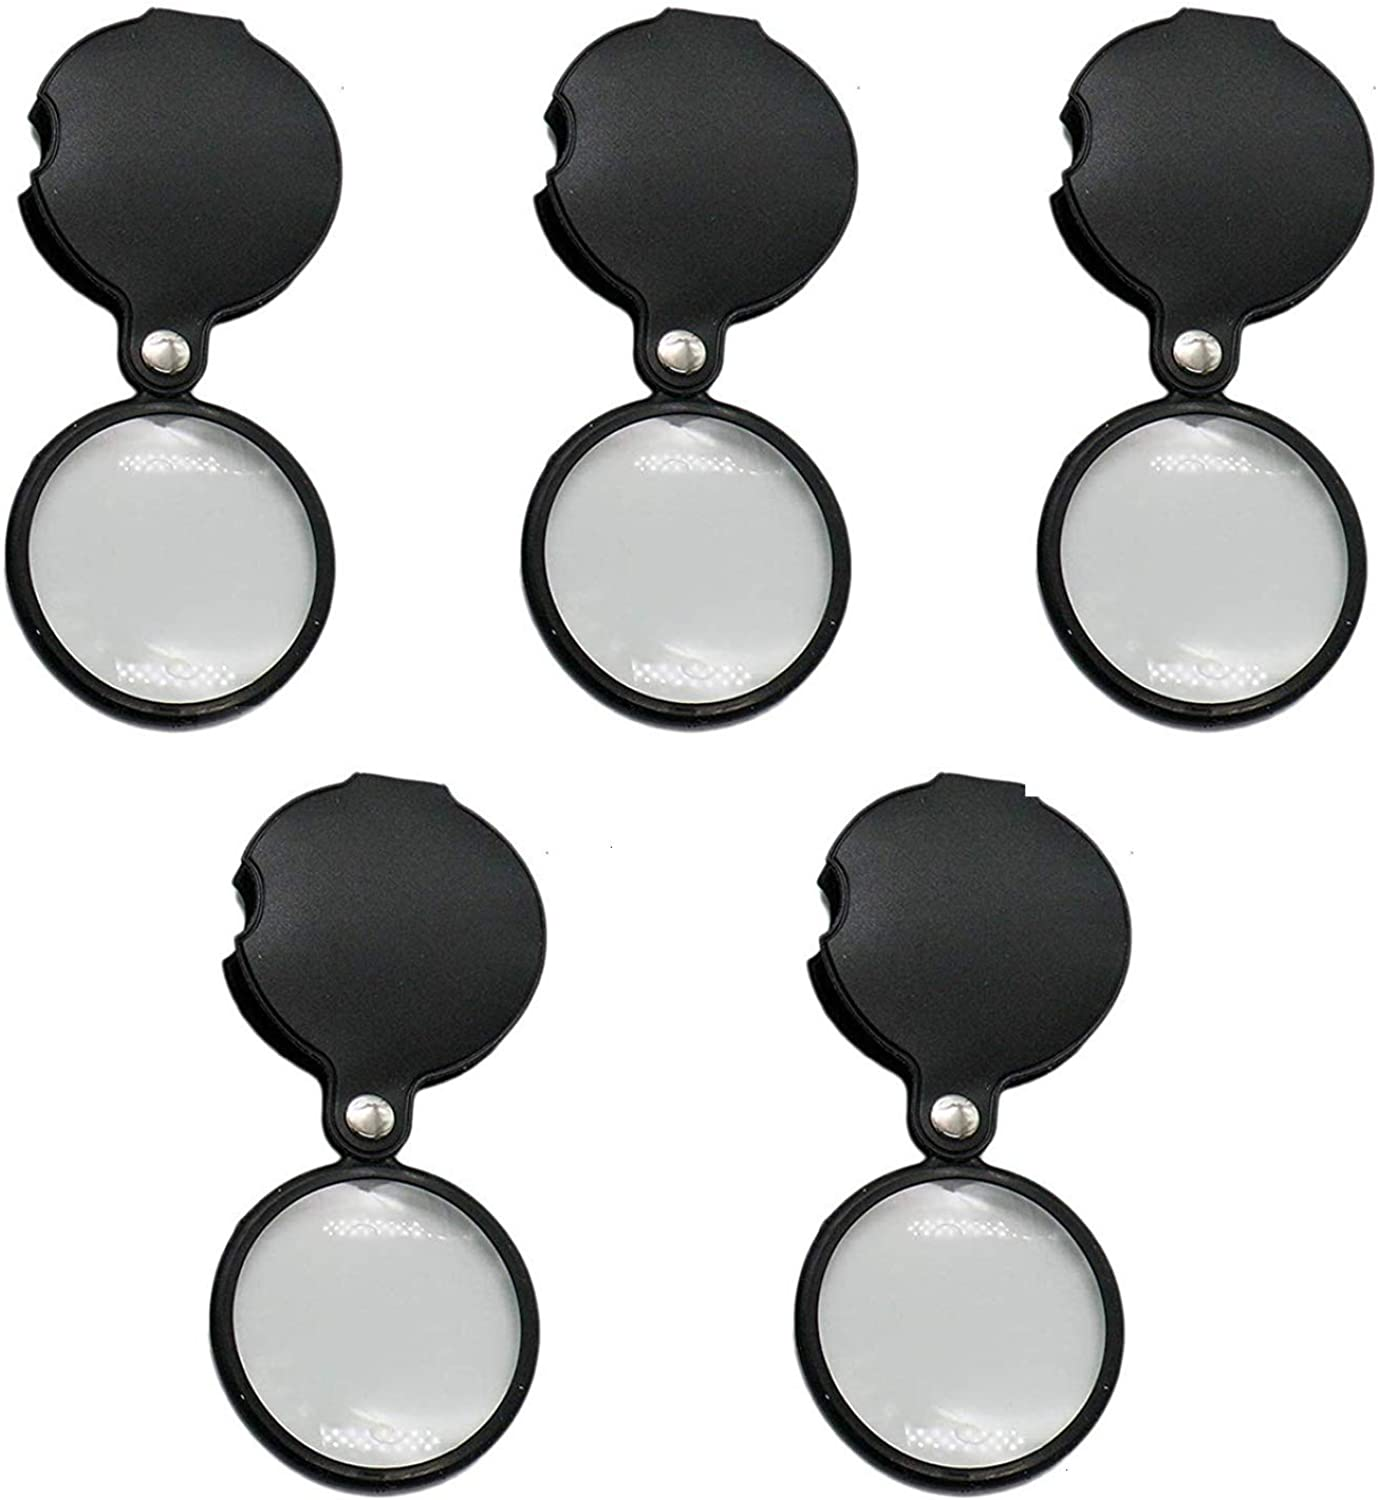 Timoo 5 PCS Small Magnifying Glass 3 x Folding Pocket Magnifier with redating Leather Case for Read Research Hobby, Black